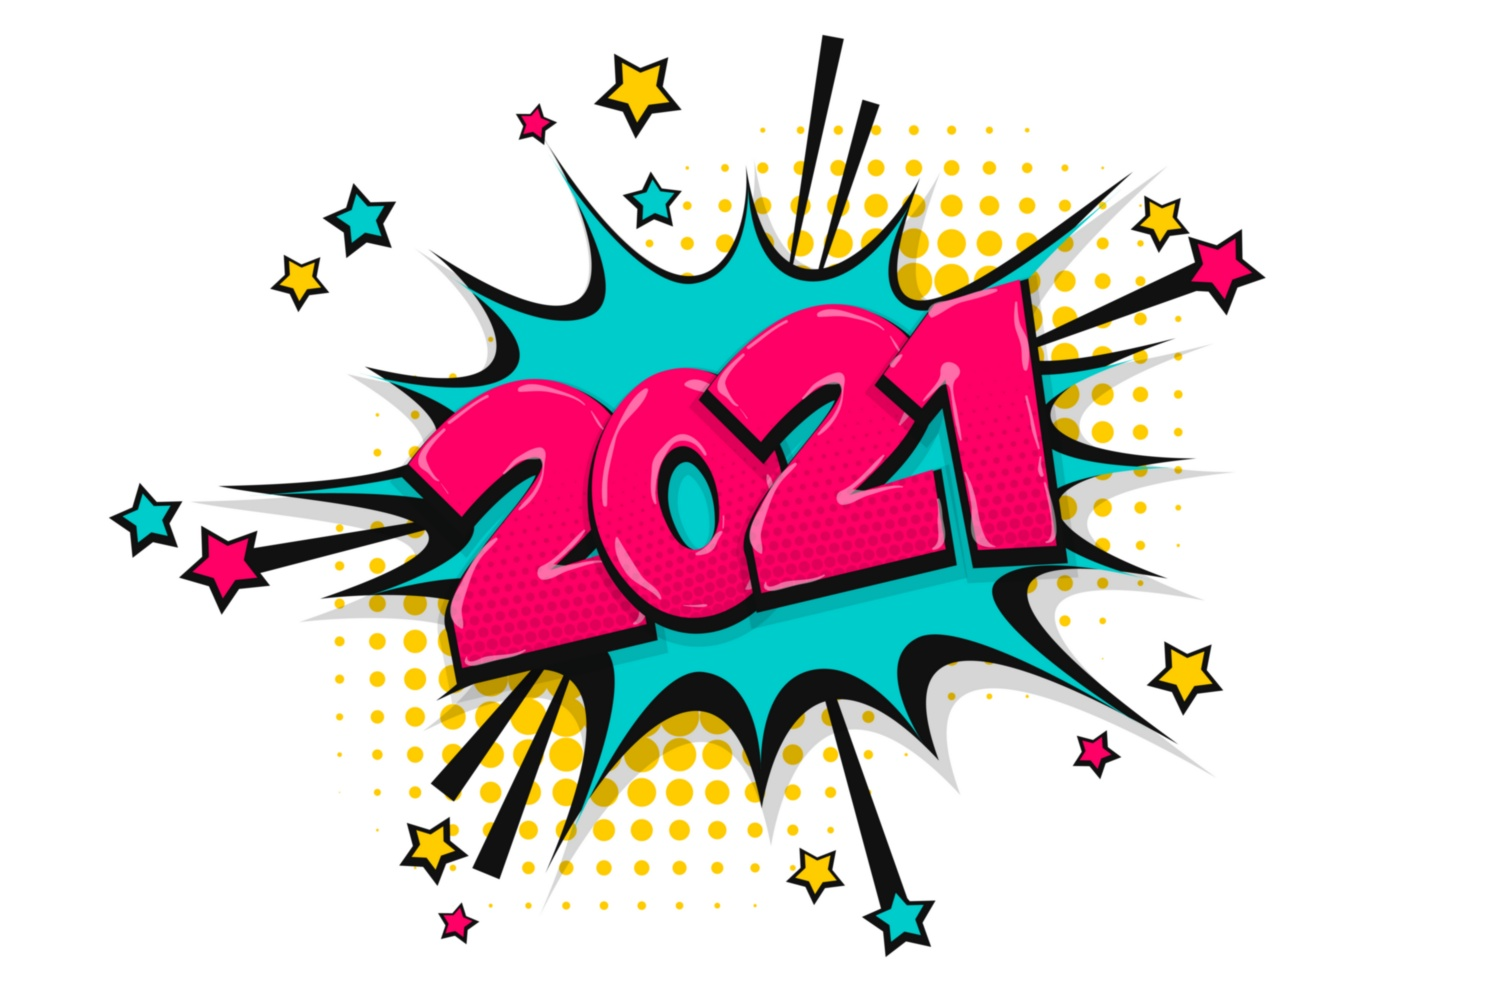 2022 Happy New Year Christmas Comic Text Graphic by